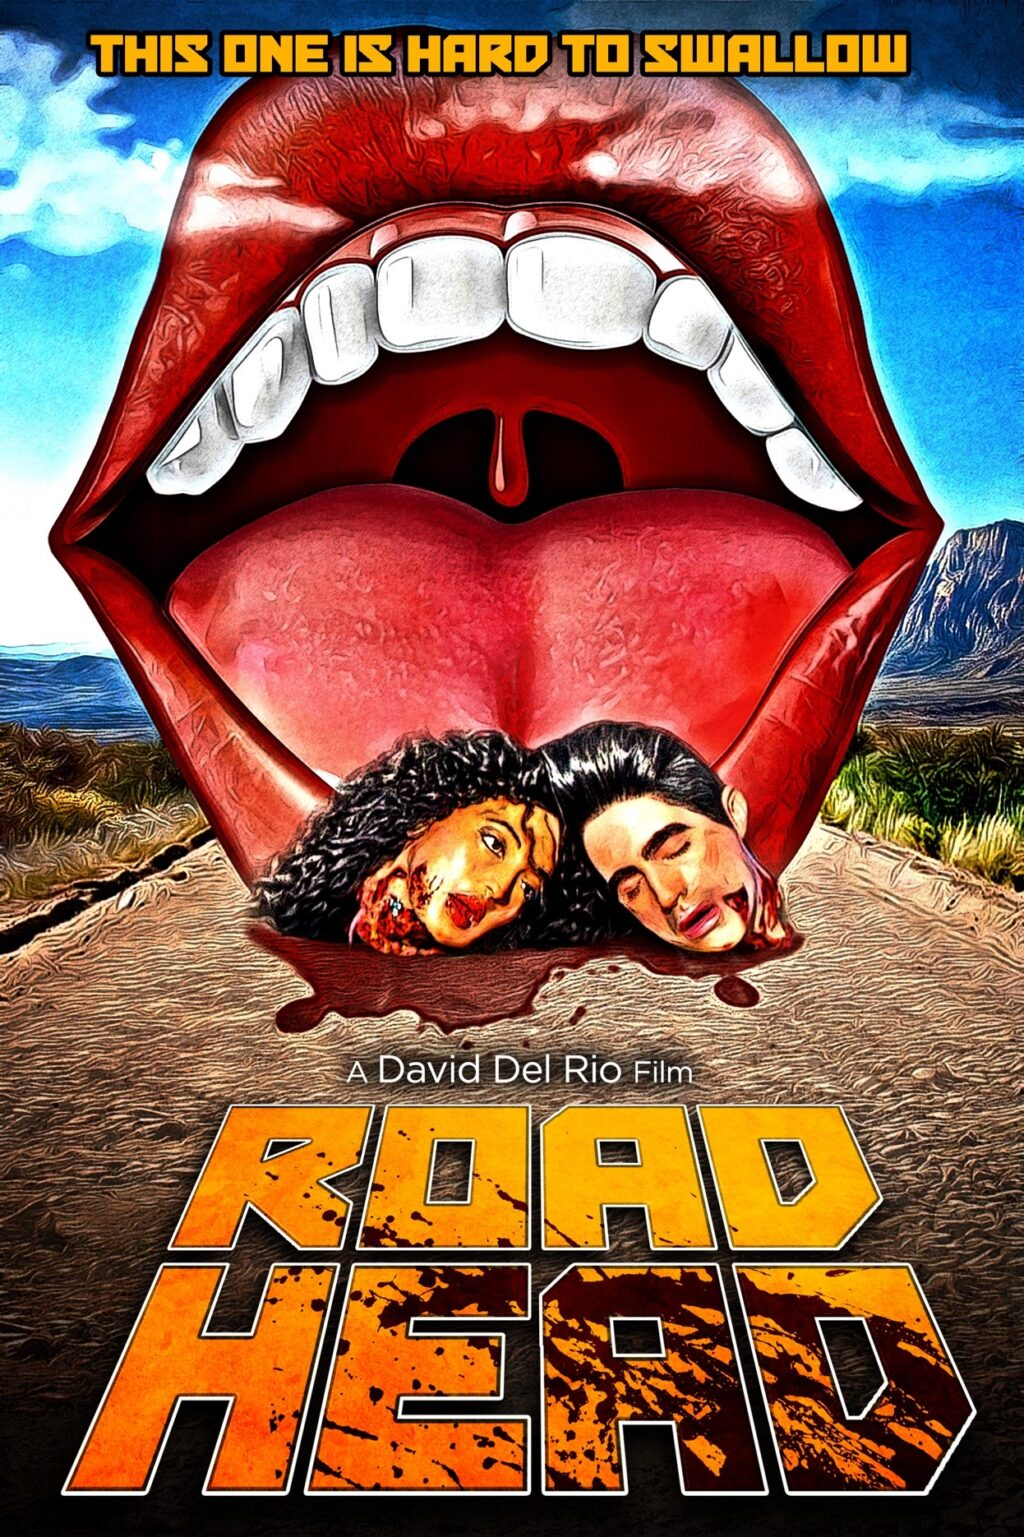 road head poster 1024x1537 - ROAD HEAD Review--Strange Scenes Inside a Wasteland